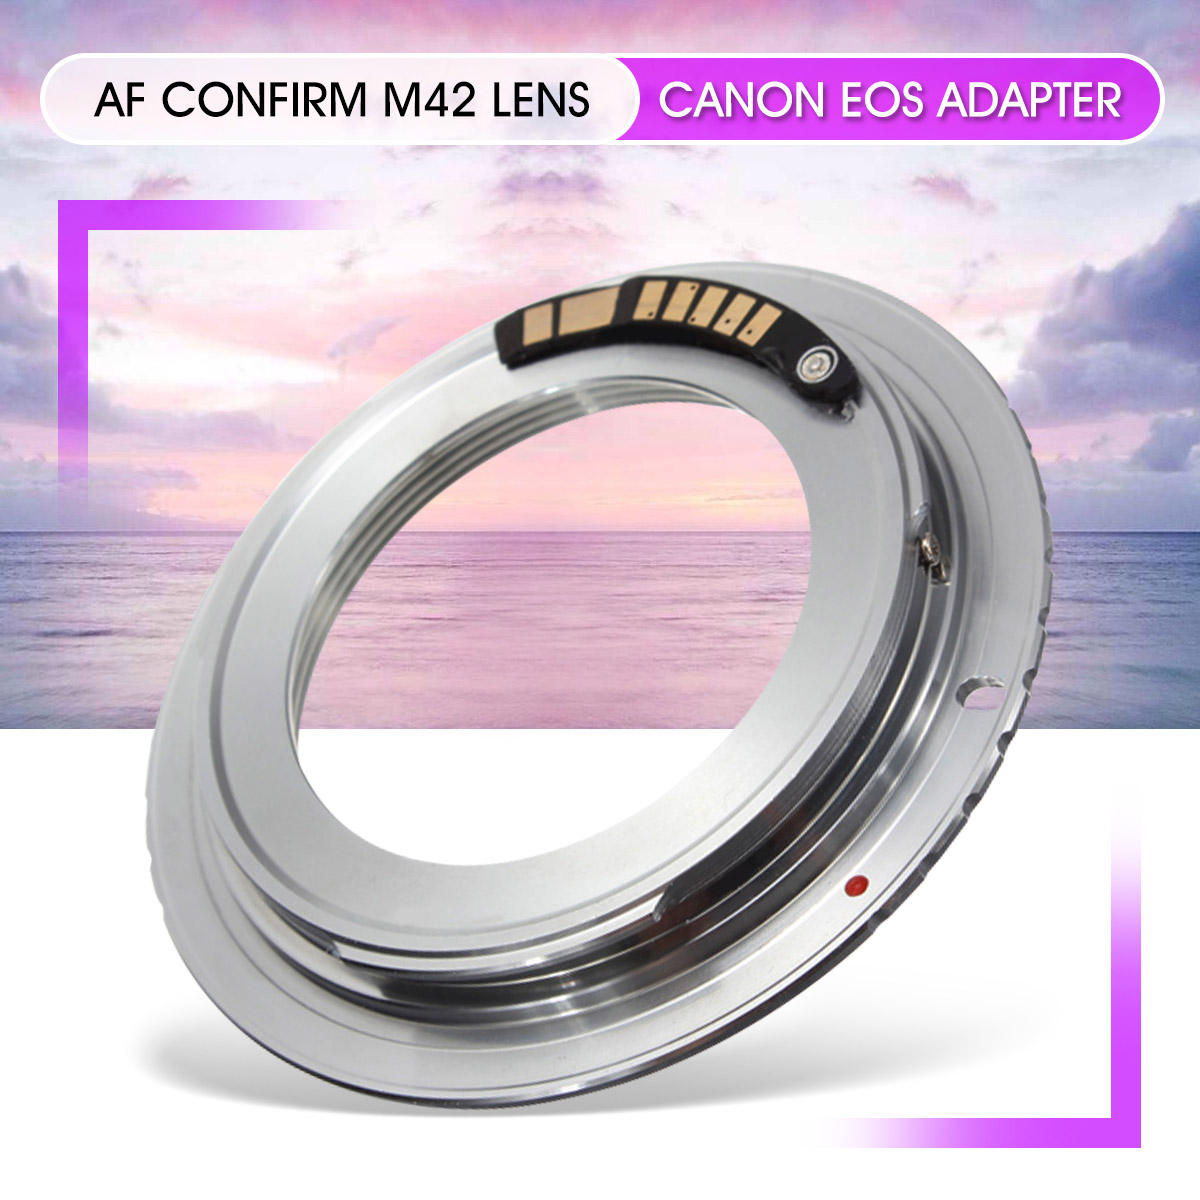 1Pcs Brass AF Electronic Confirm Chip M42 Lens to for Canon for EOS Mount Adapter 60D 50D 40D 600D 550D 500D Non-autofocus Lens1Pcs Brass AF Electronic Confirm Chip M42 Lens to for Canon for EOS Mount Adapter 60D 50D 40D 600D 550D 500D Non-autofocus Lens